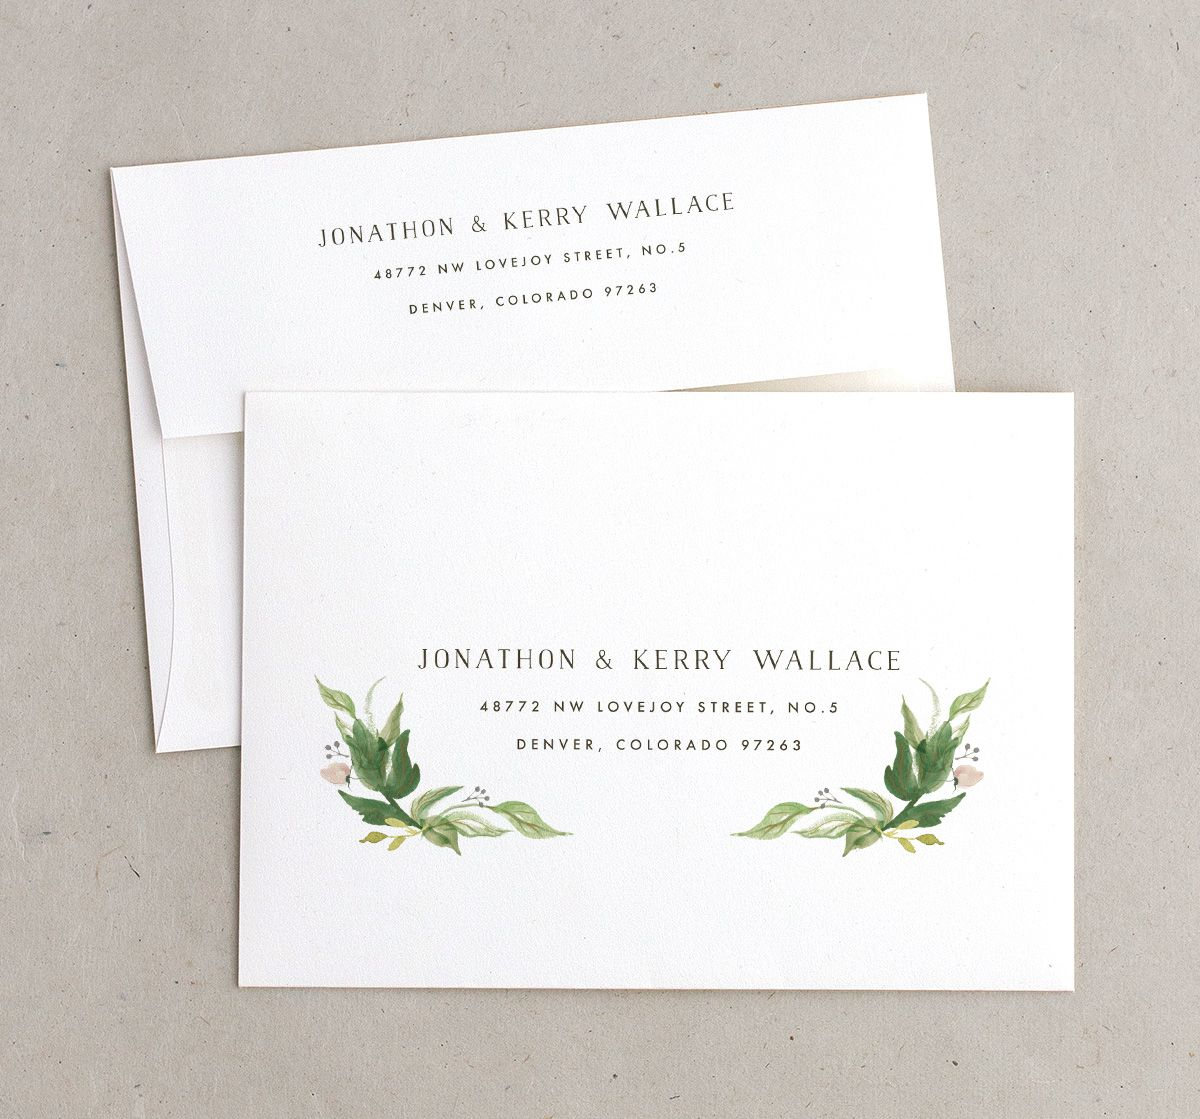 leafy wreath recipient address printing in green